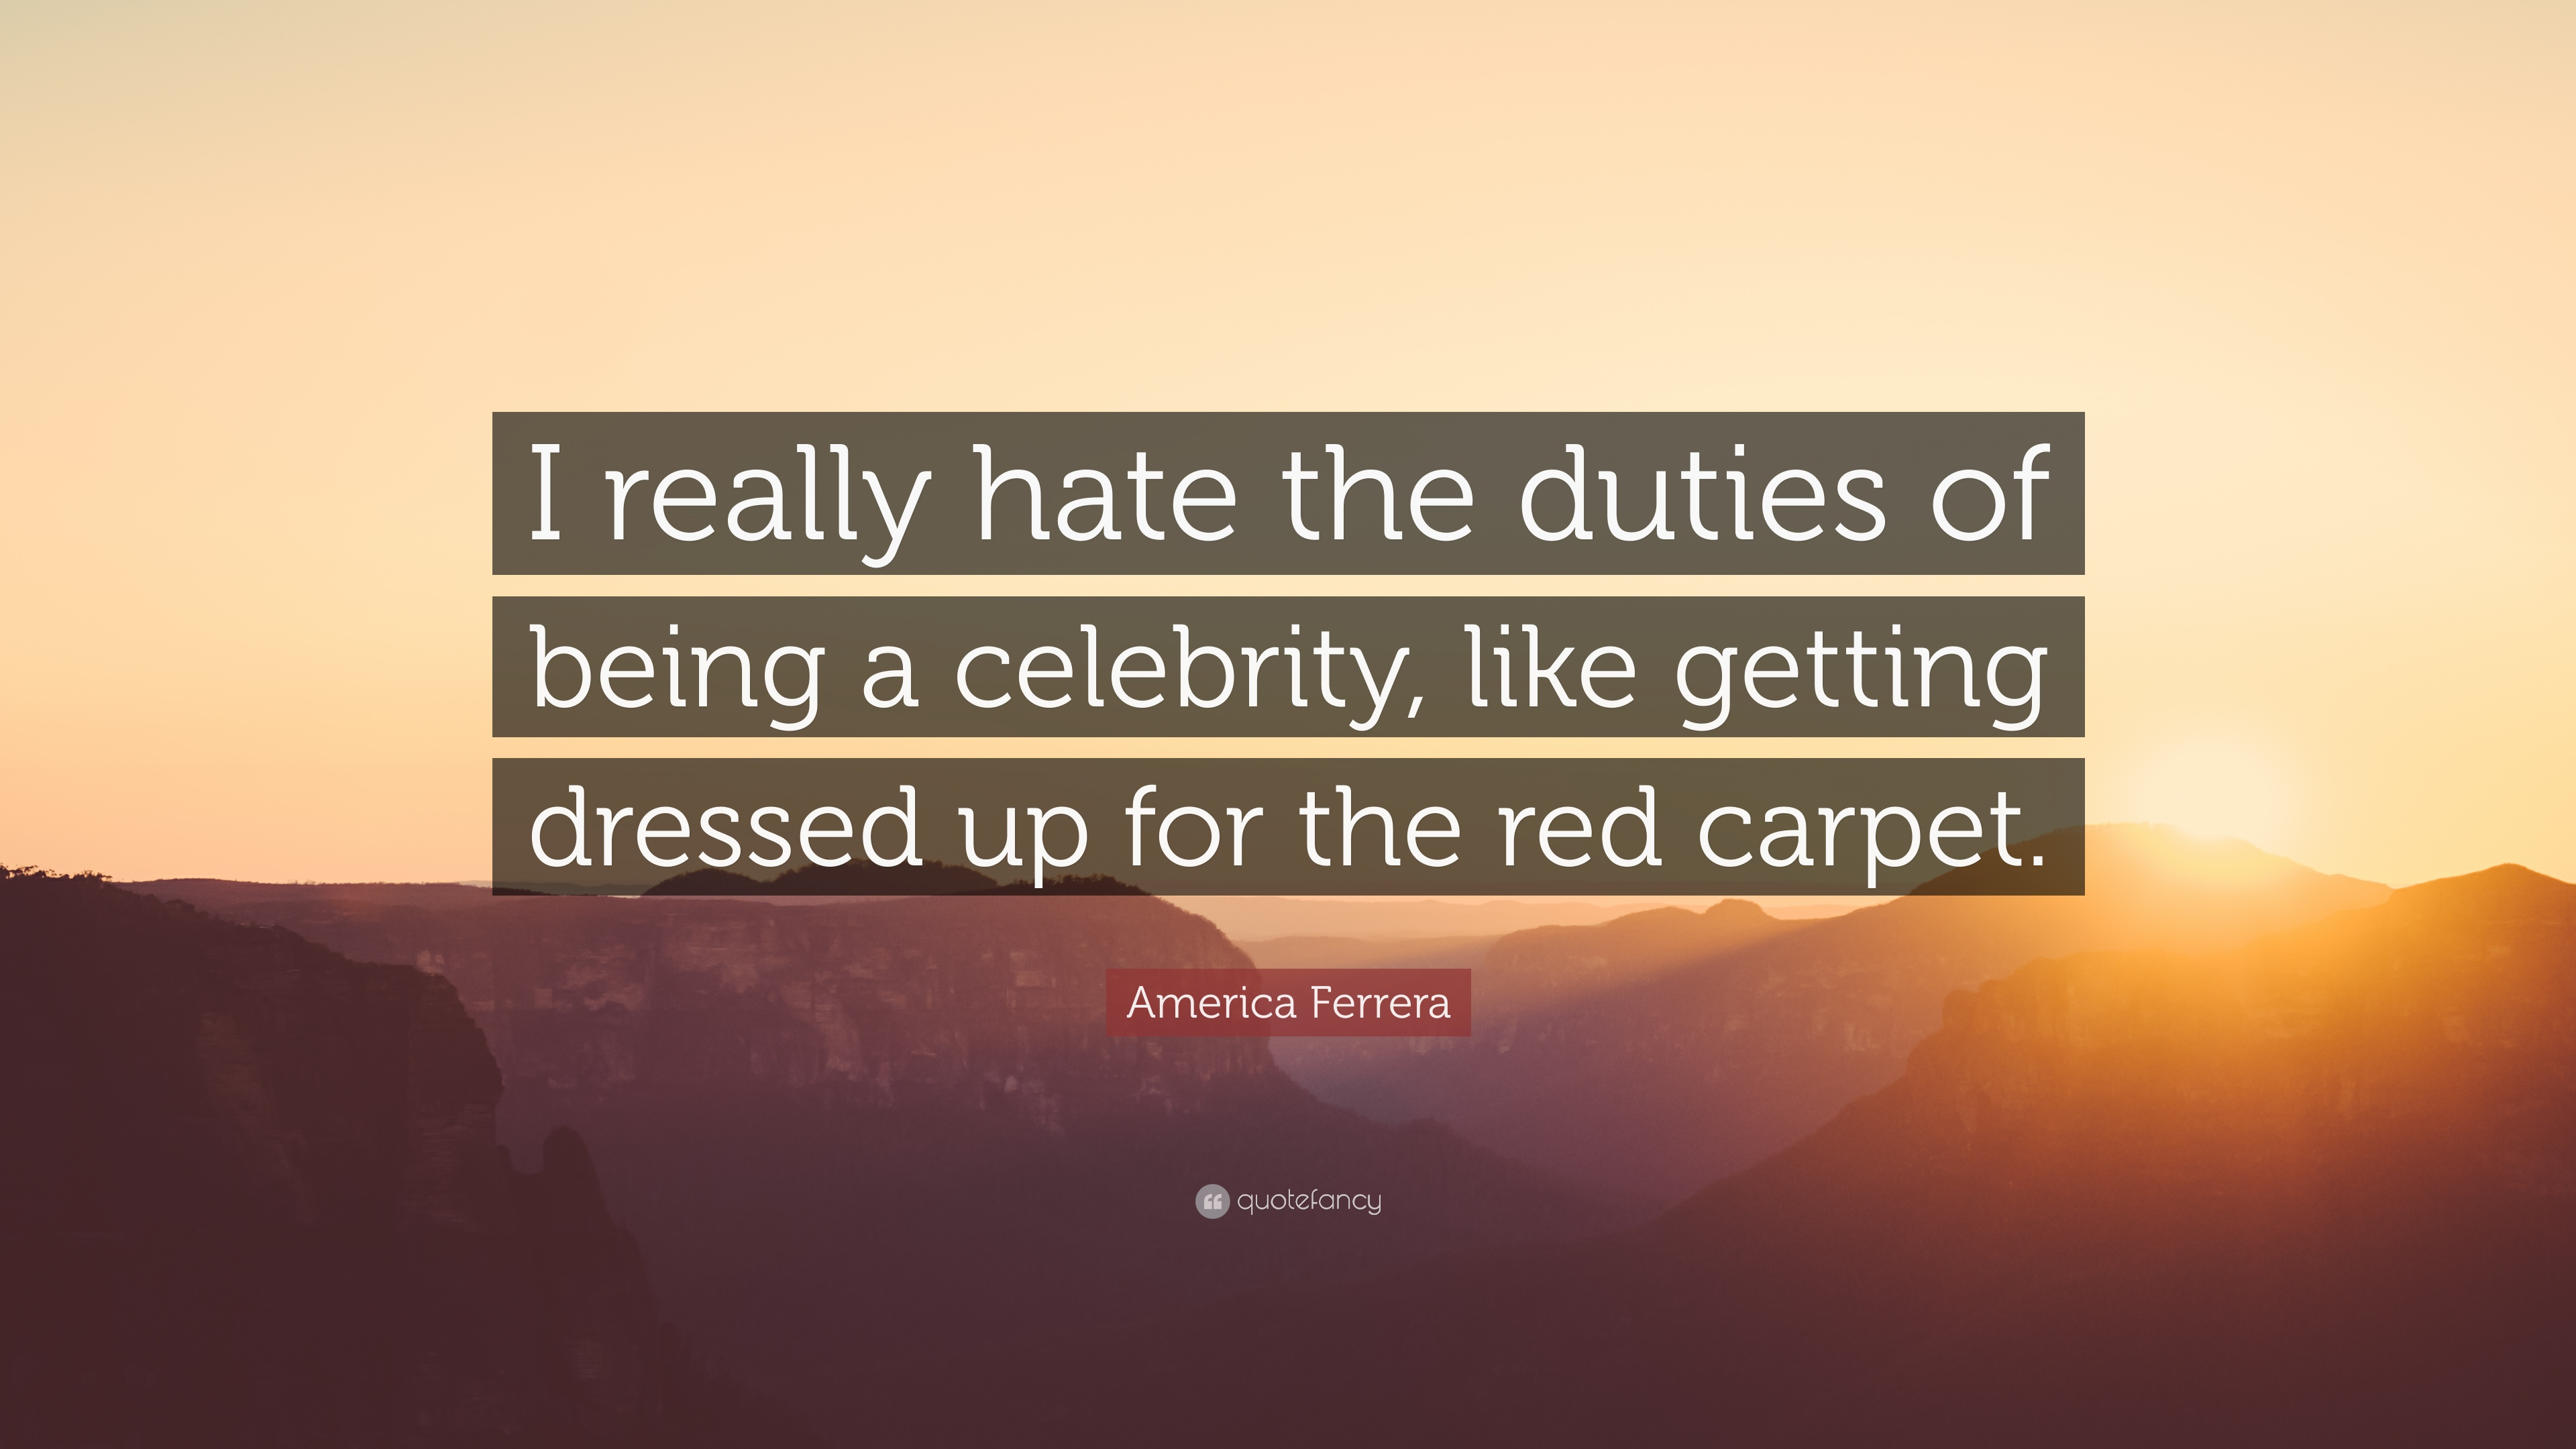 America Ferrera Quote I Really Hate The Duties Of Being A Celebrity Like Getting Dressed Up For The Red Carpet 7 Wallpapers Quotefancy